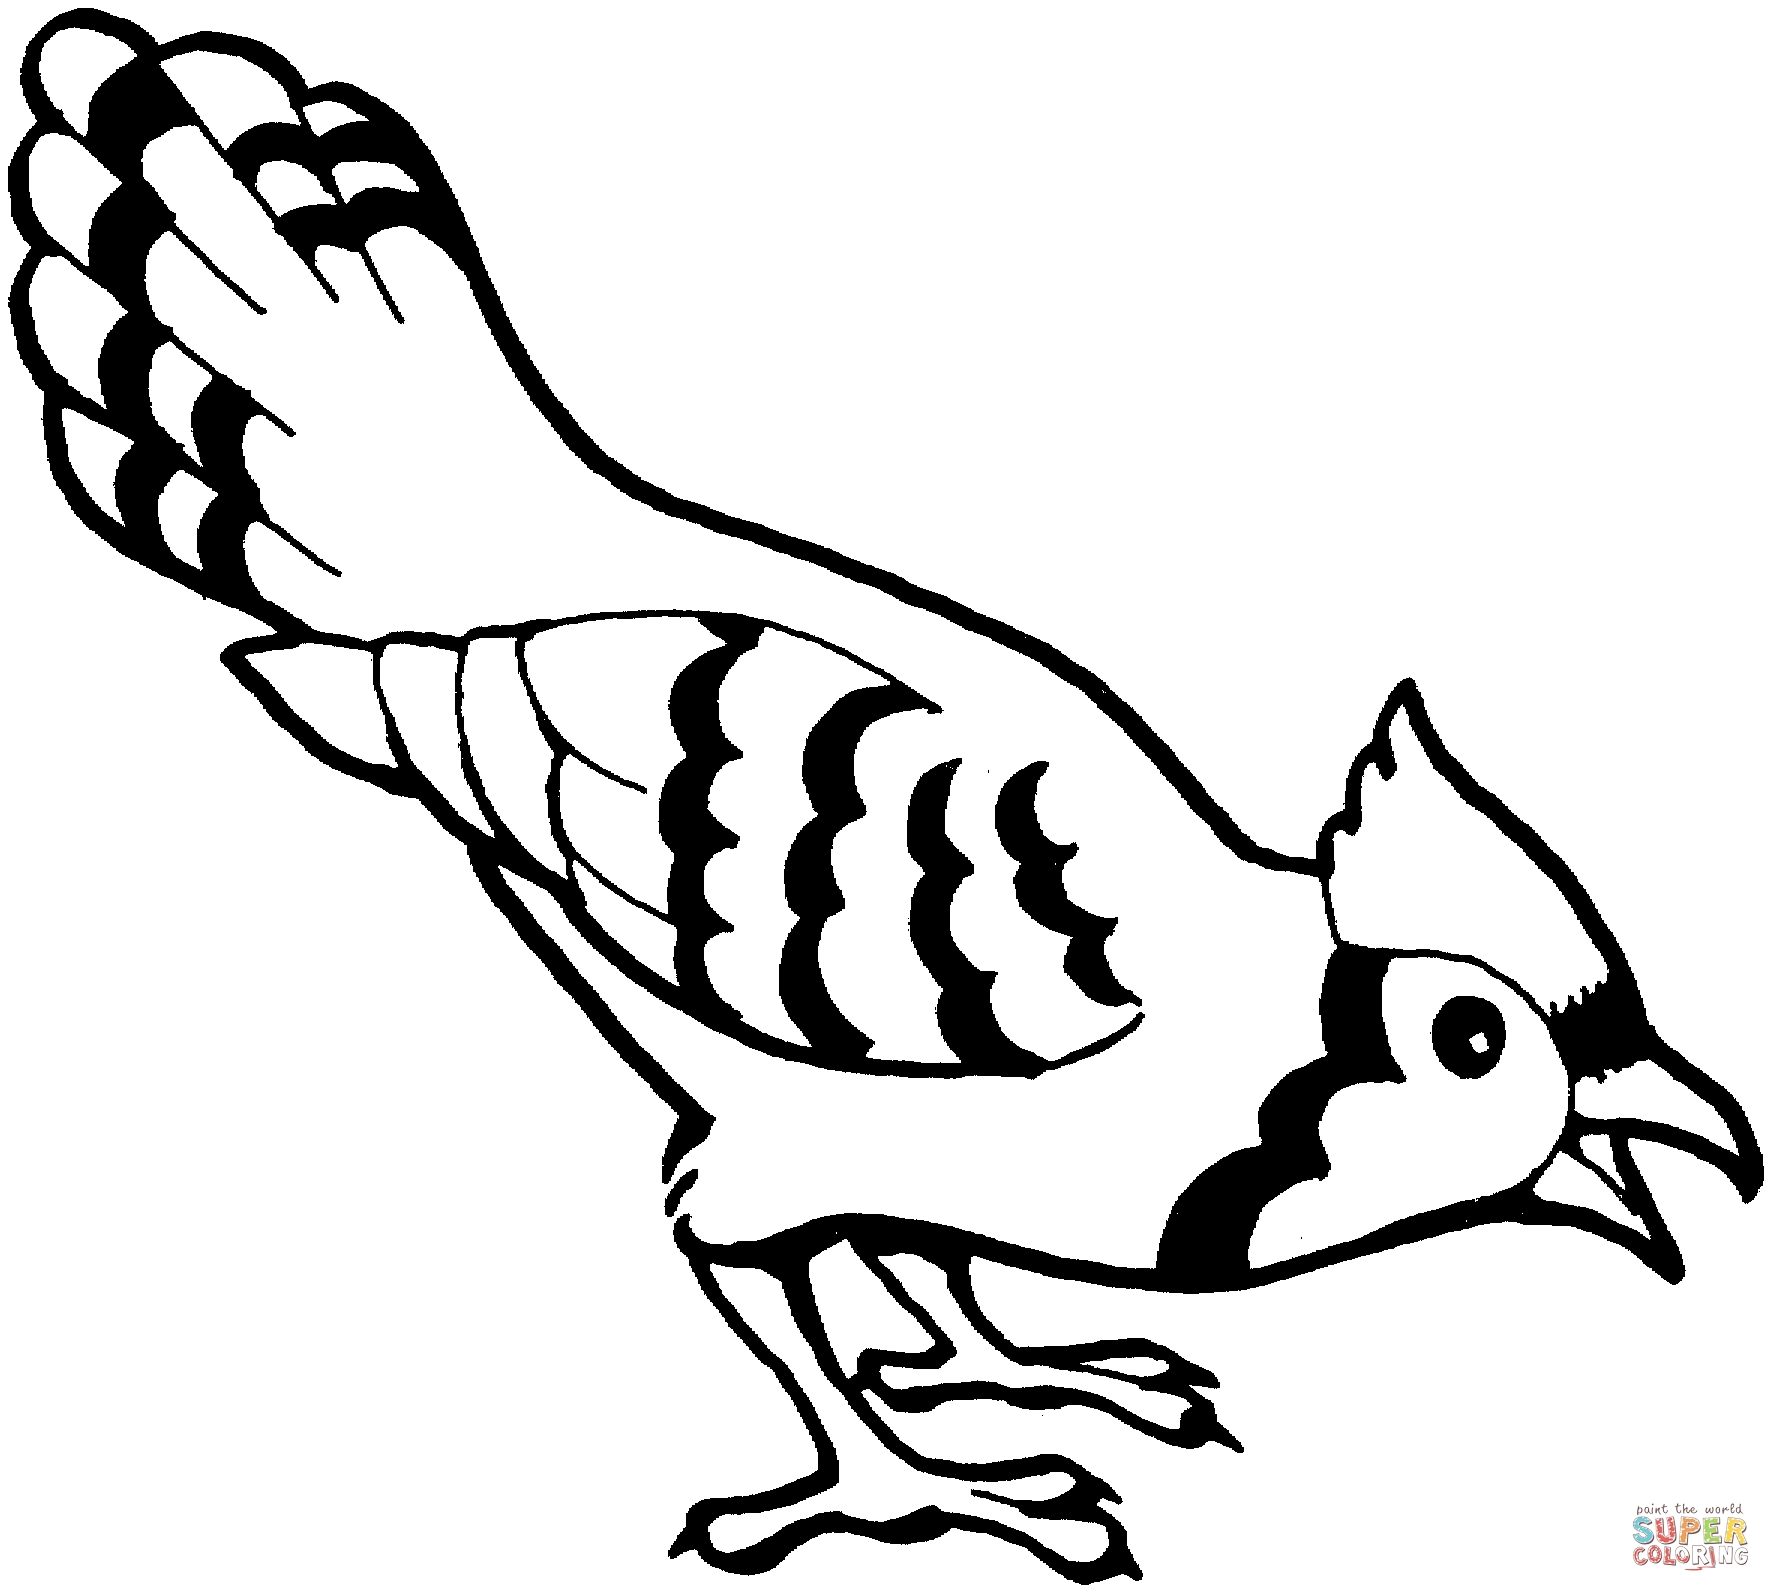 blue jay coloring page - blue jay bird